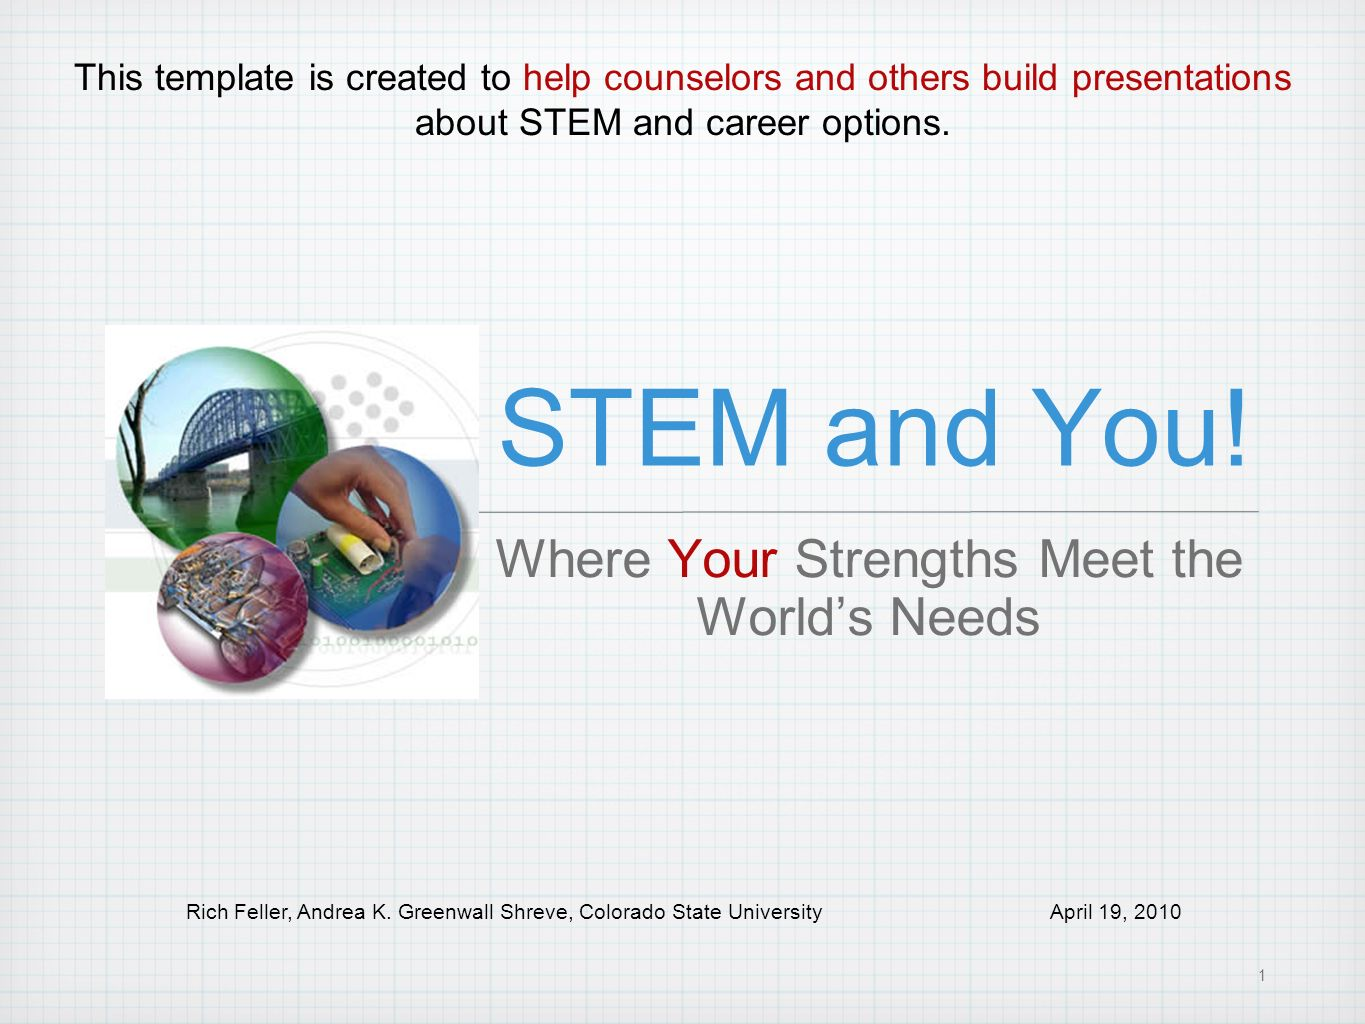 Where Your Strengths Meet the World's Needs